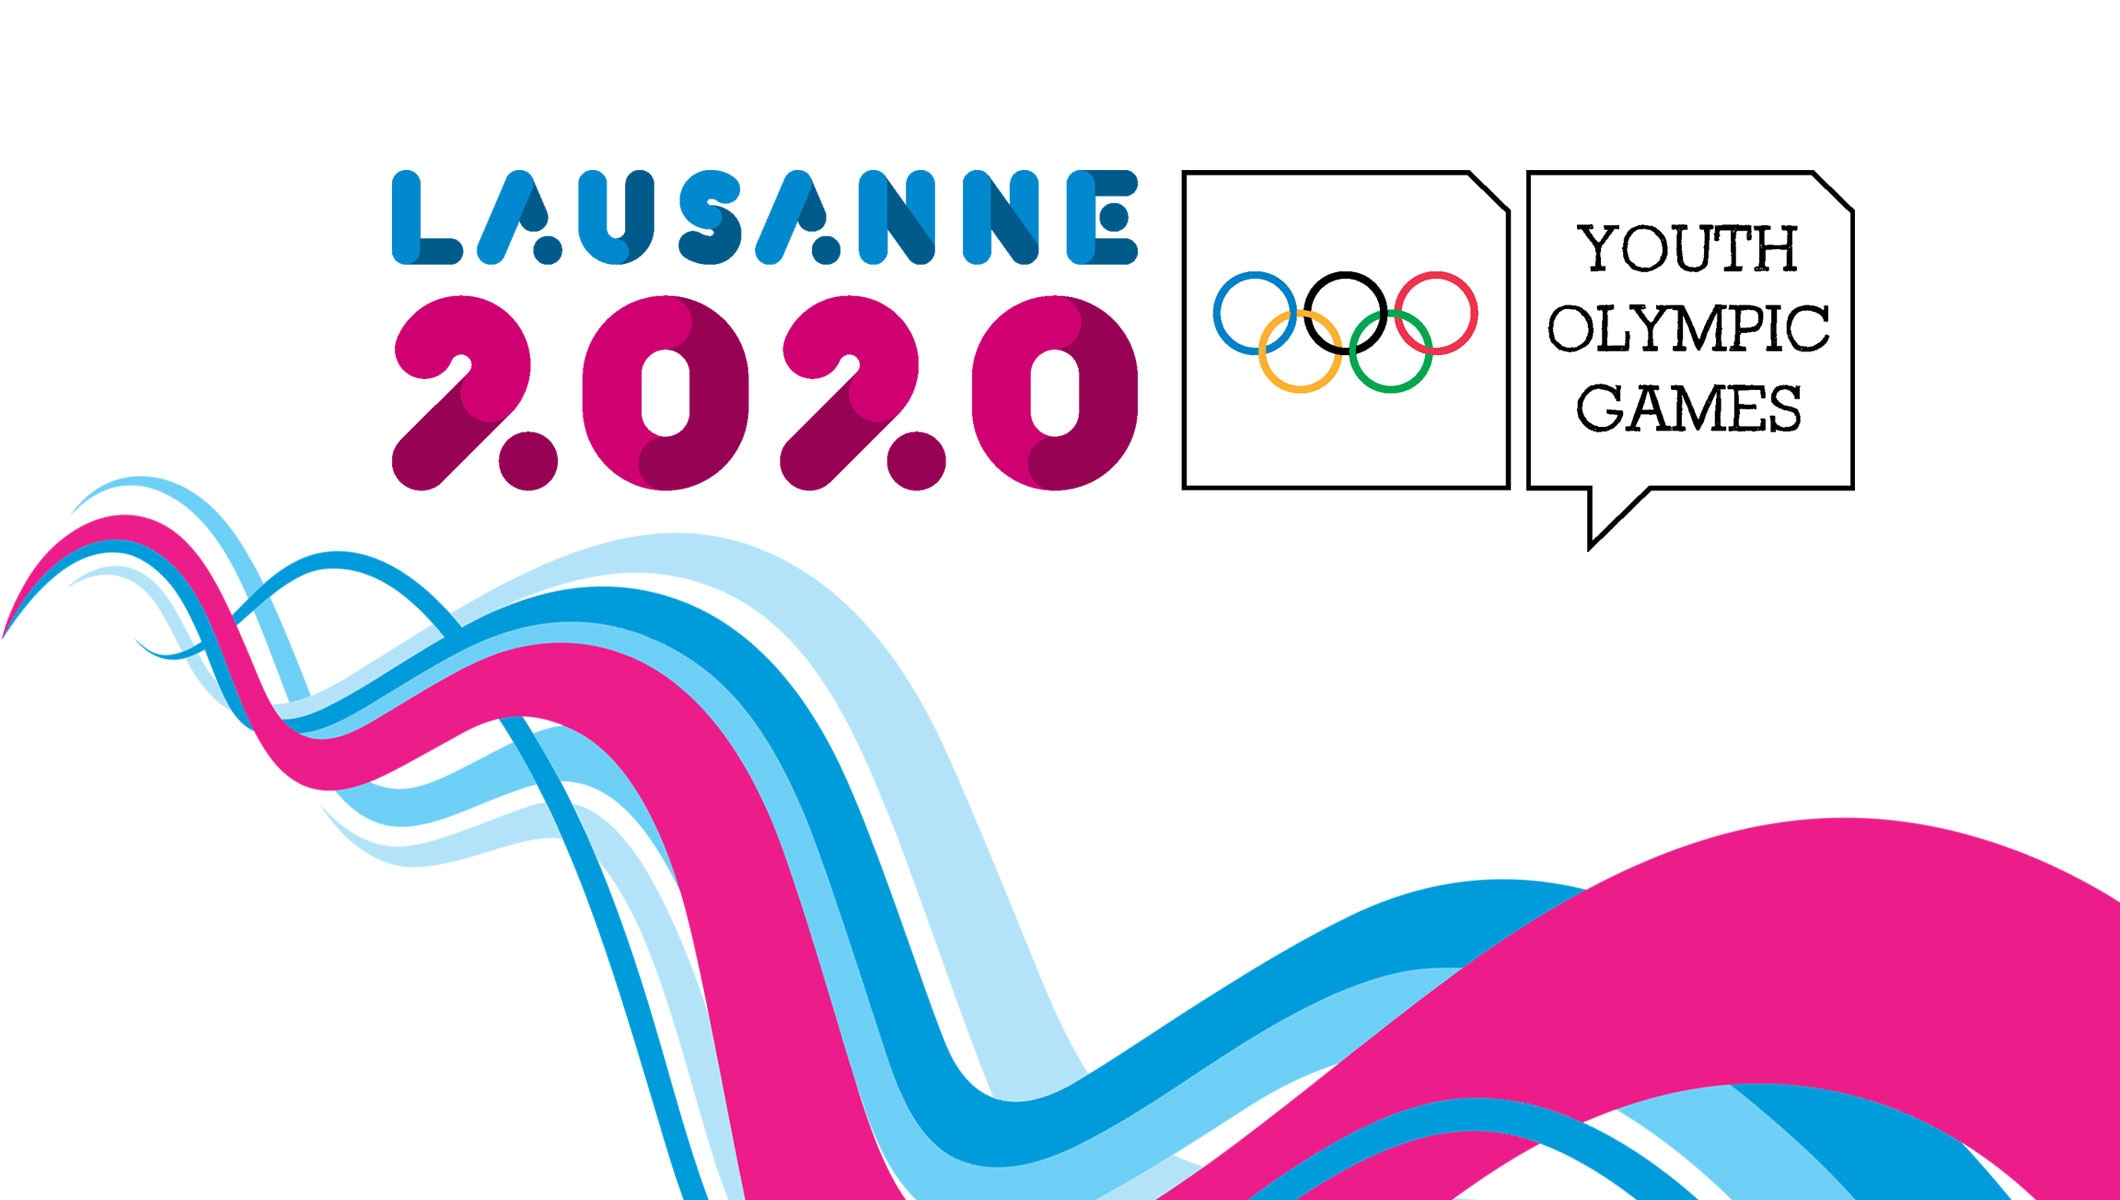 Pyeongchang 2020 Olympic Winter Games Schedule.Olympic Channel Will Present 300 Hours Of Lausanne 2020